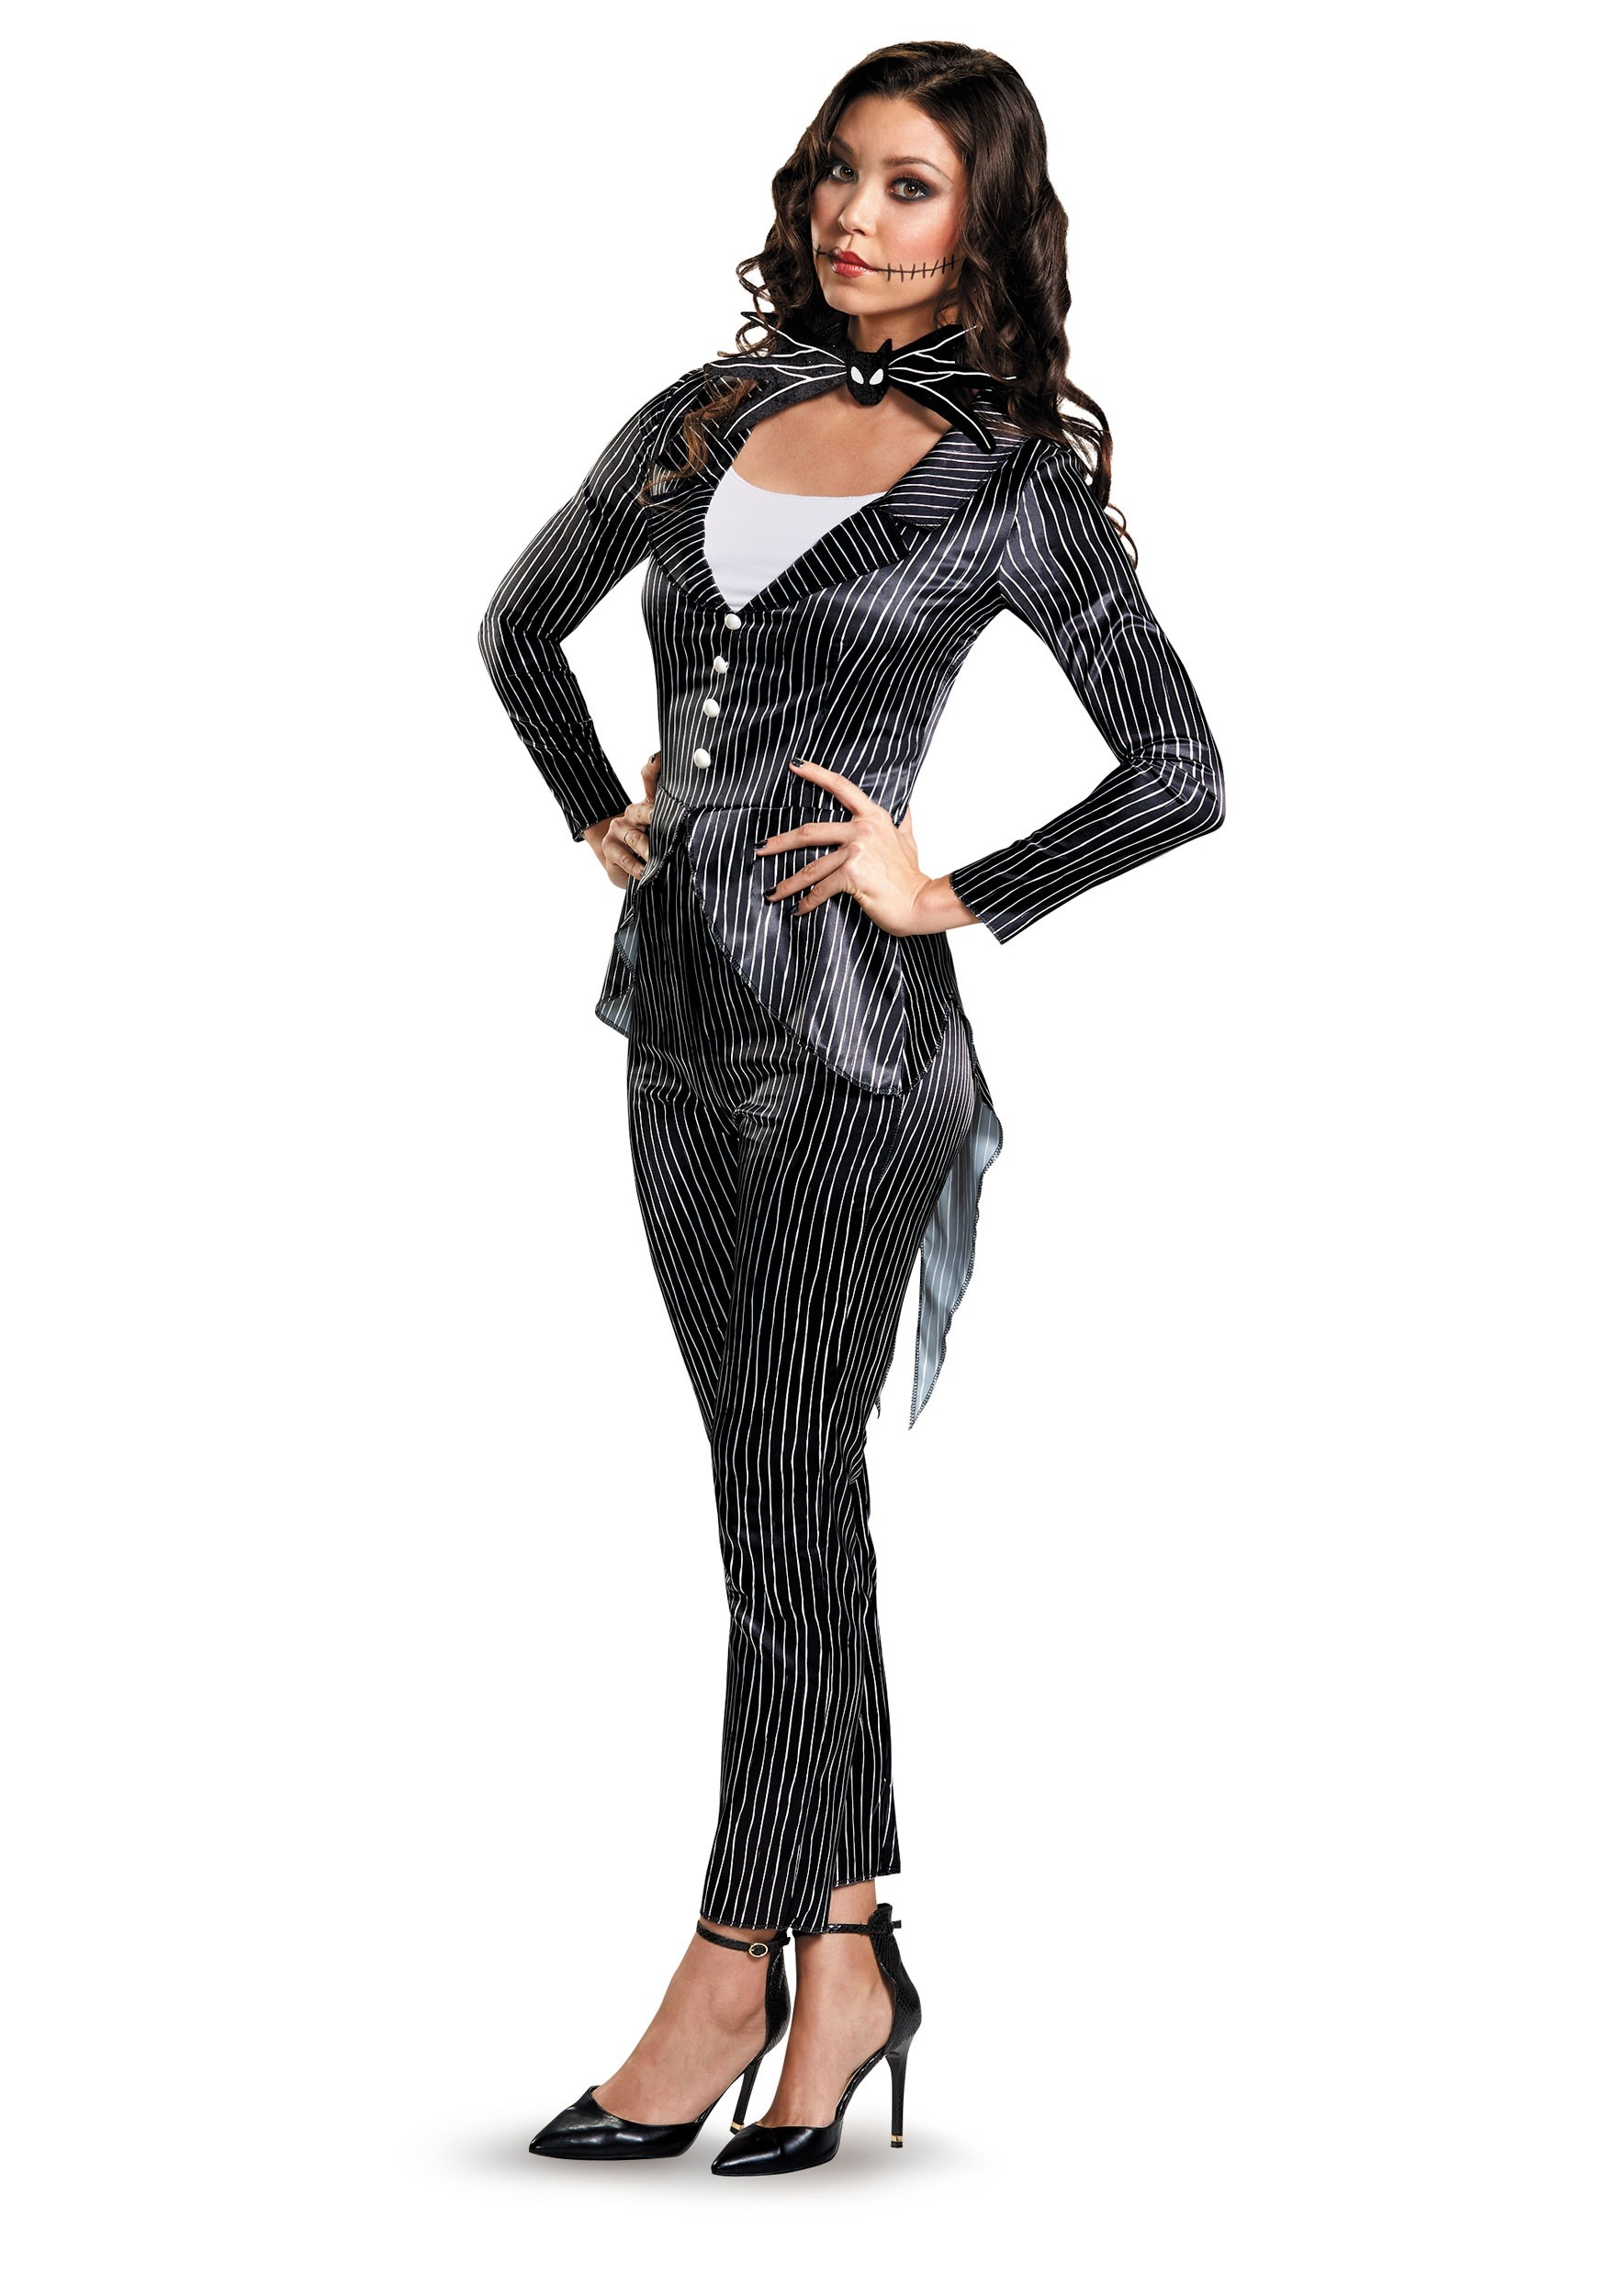 Jack Skellington Dress